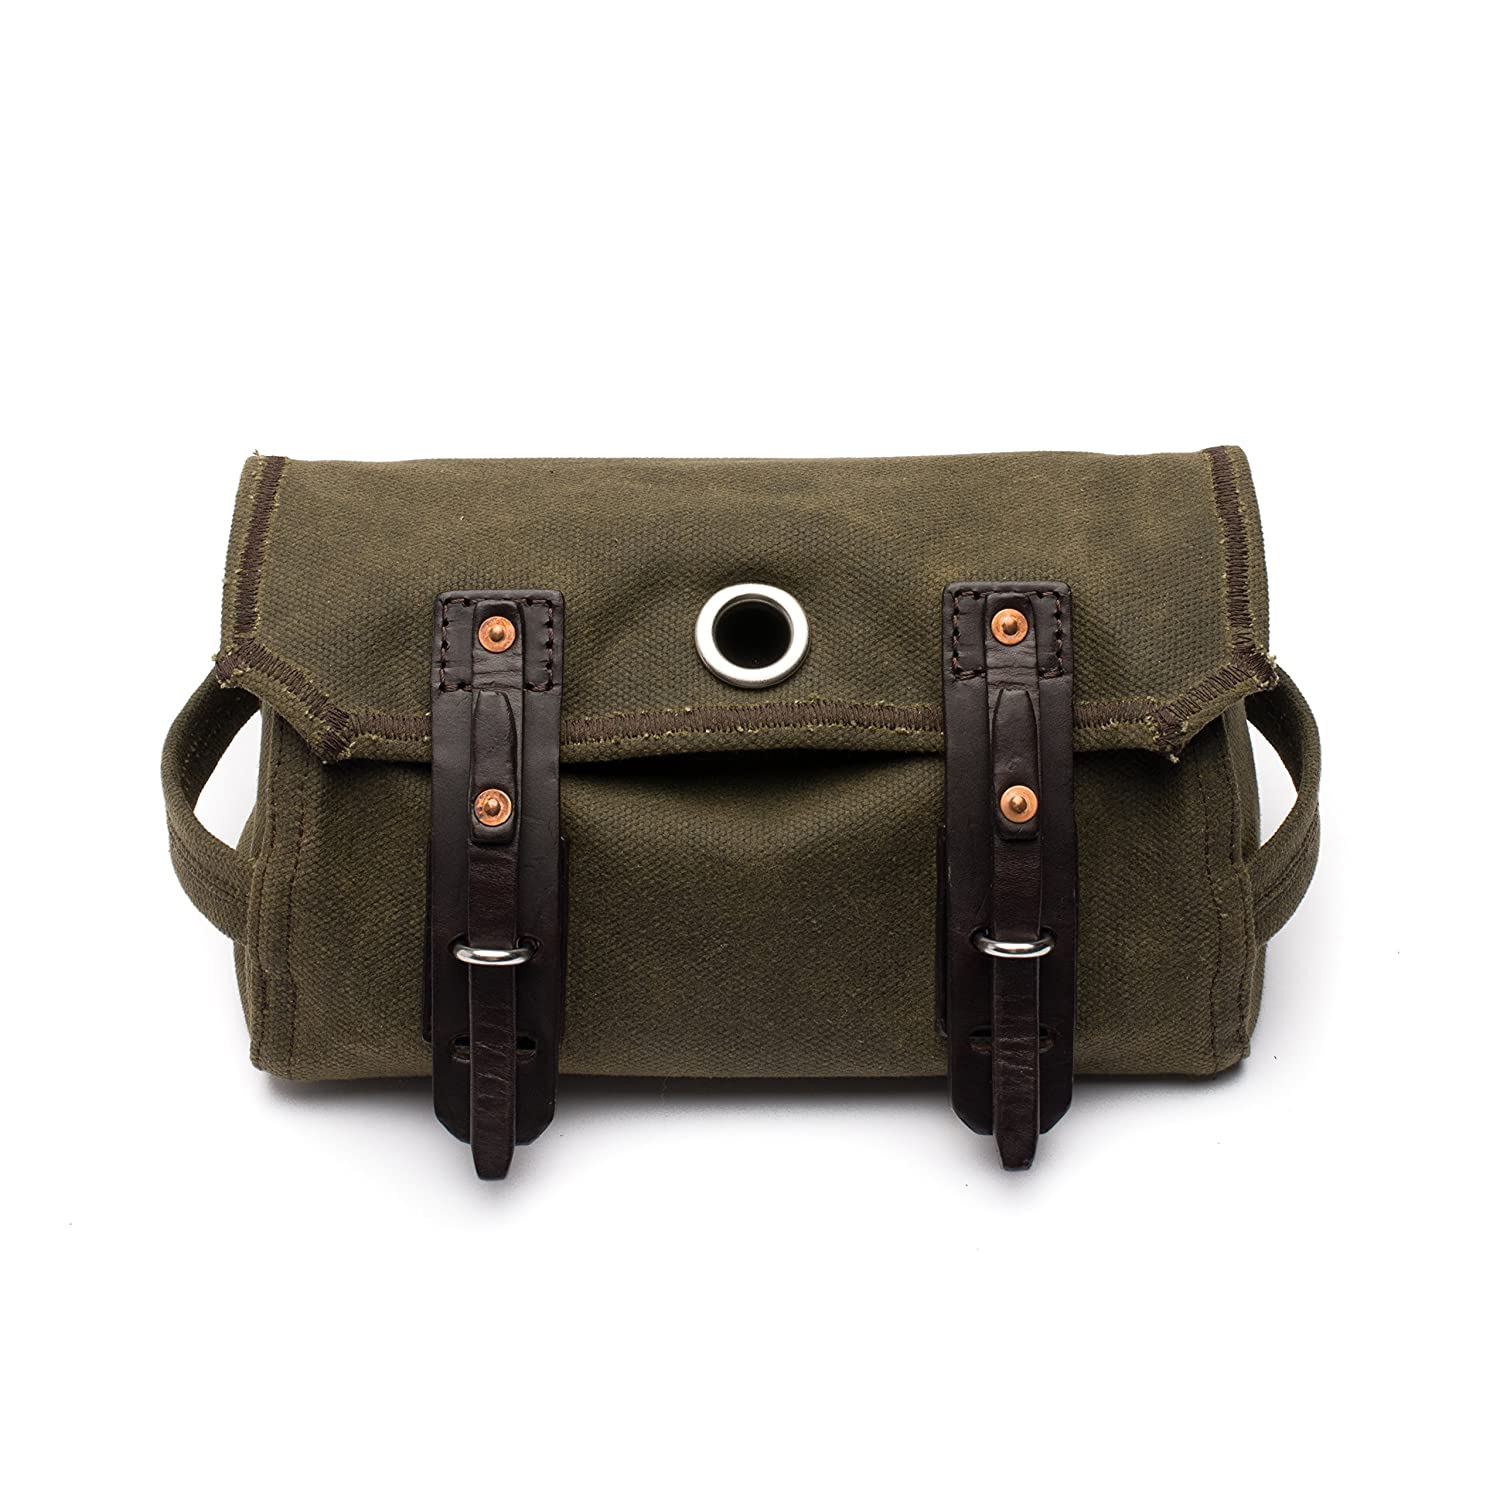 Saddleback Leather Canvas Dopp Kit Hanging Canvas and Leather Mens Toiletry Bag 100 Year Warranty 03-10-0021-MD-MG-C